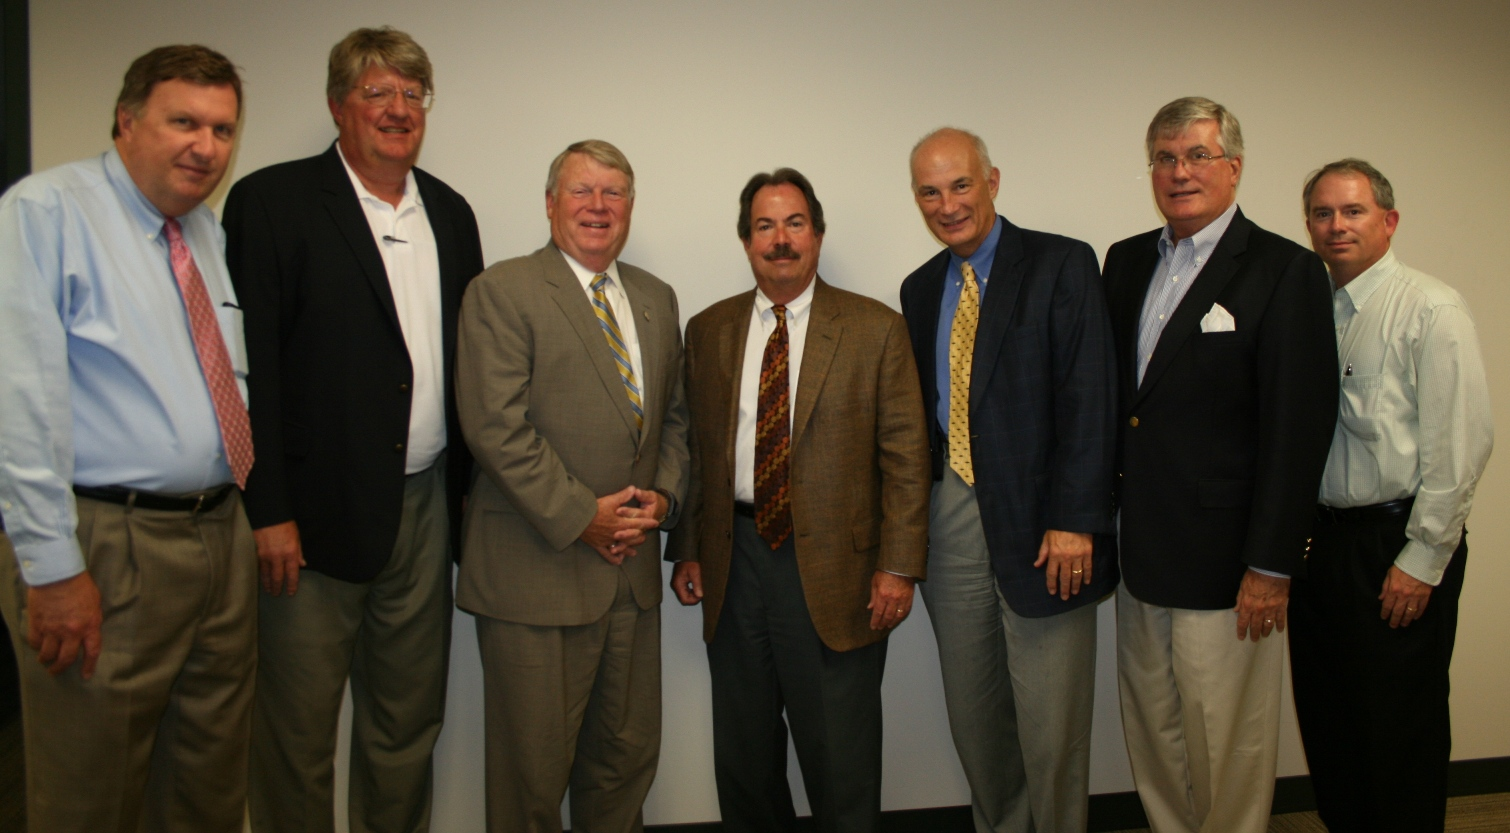 (pictured from left) Ira Agricola, Senior Vice President of the Chamber; Shep Miller, Chair of the HRBizPAC; Delegate Scott Lingamfelter; Tuck Bowie, Chair of the Chamber's Virginia Beach Division; Bill Holloran, former Vice Chair for Small Business; Jack Hornbeck, President & CEO of the Chamber; and Dean McClain, Municipal Affairs Director for the Chamber.